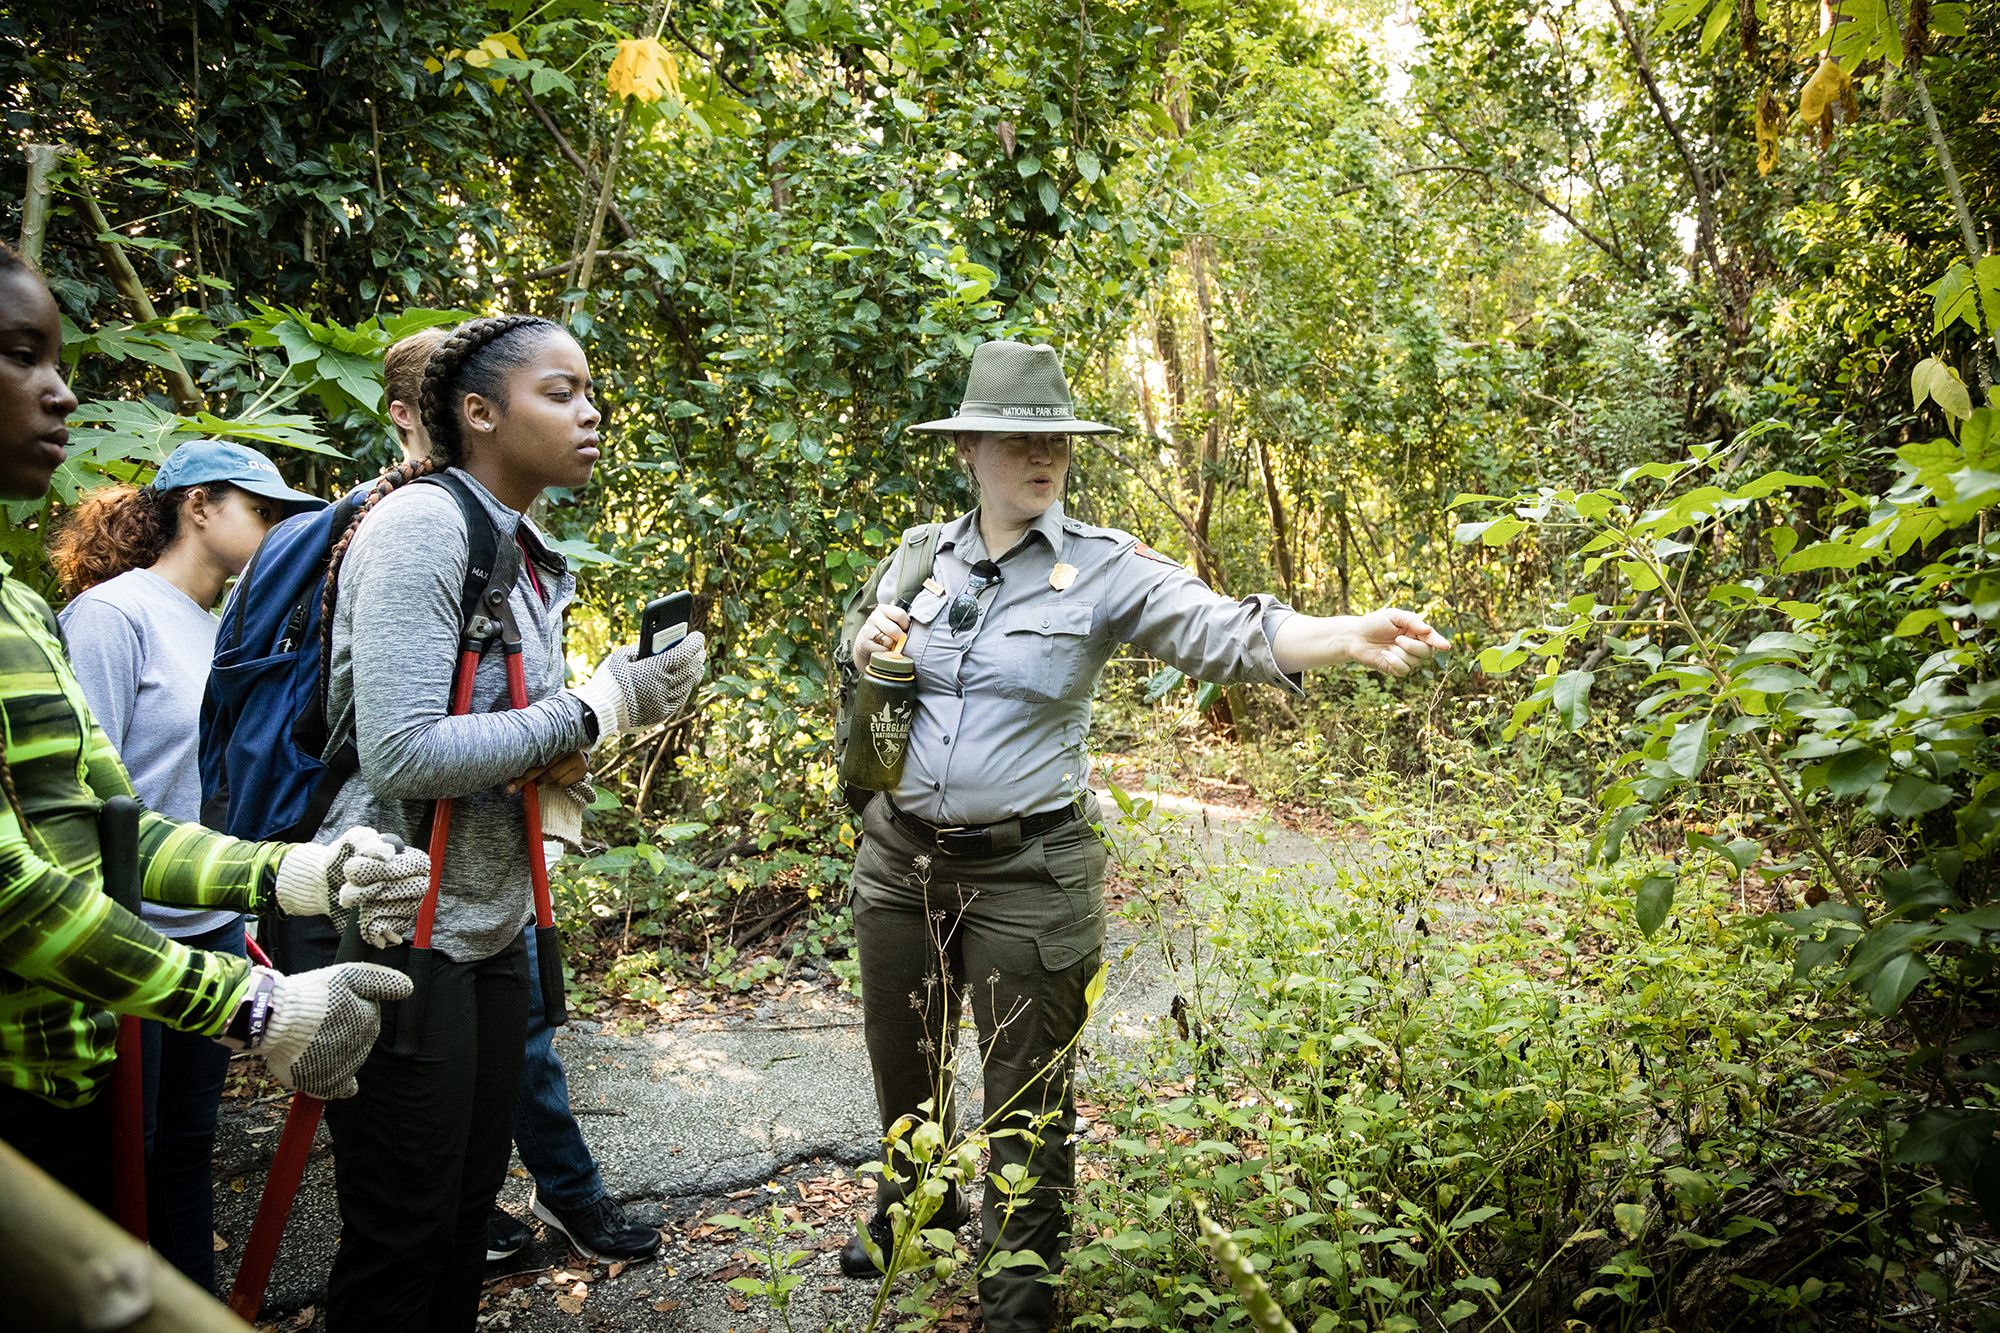 A park ranger educates students about the flora and fauna in the Everglades.